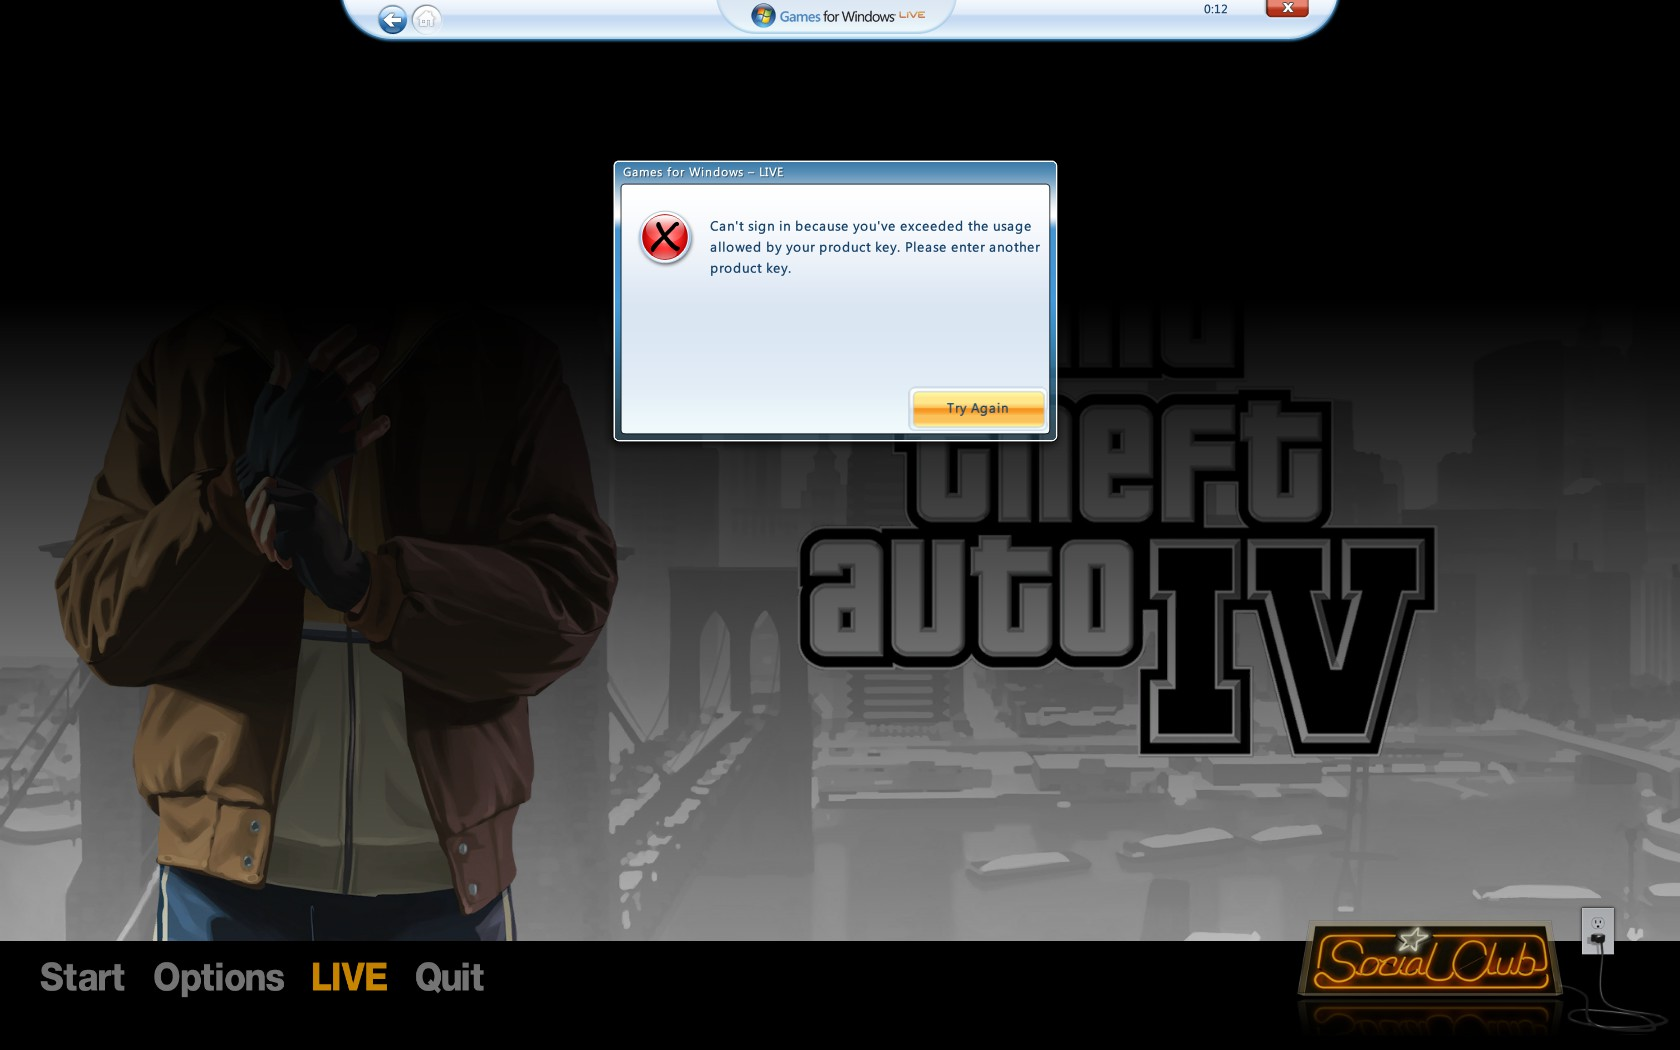 Activation issues Grand Theft Auto IV in games for windows